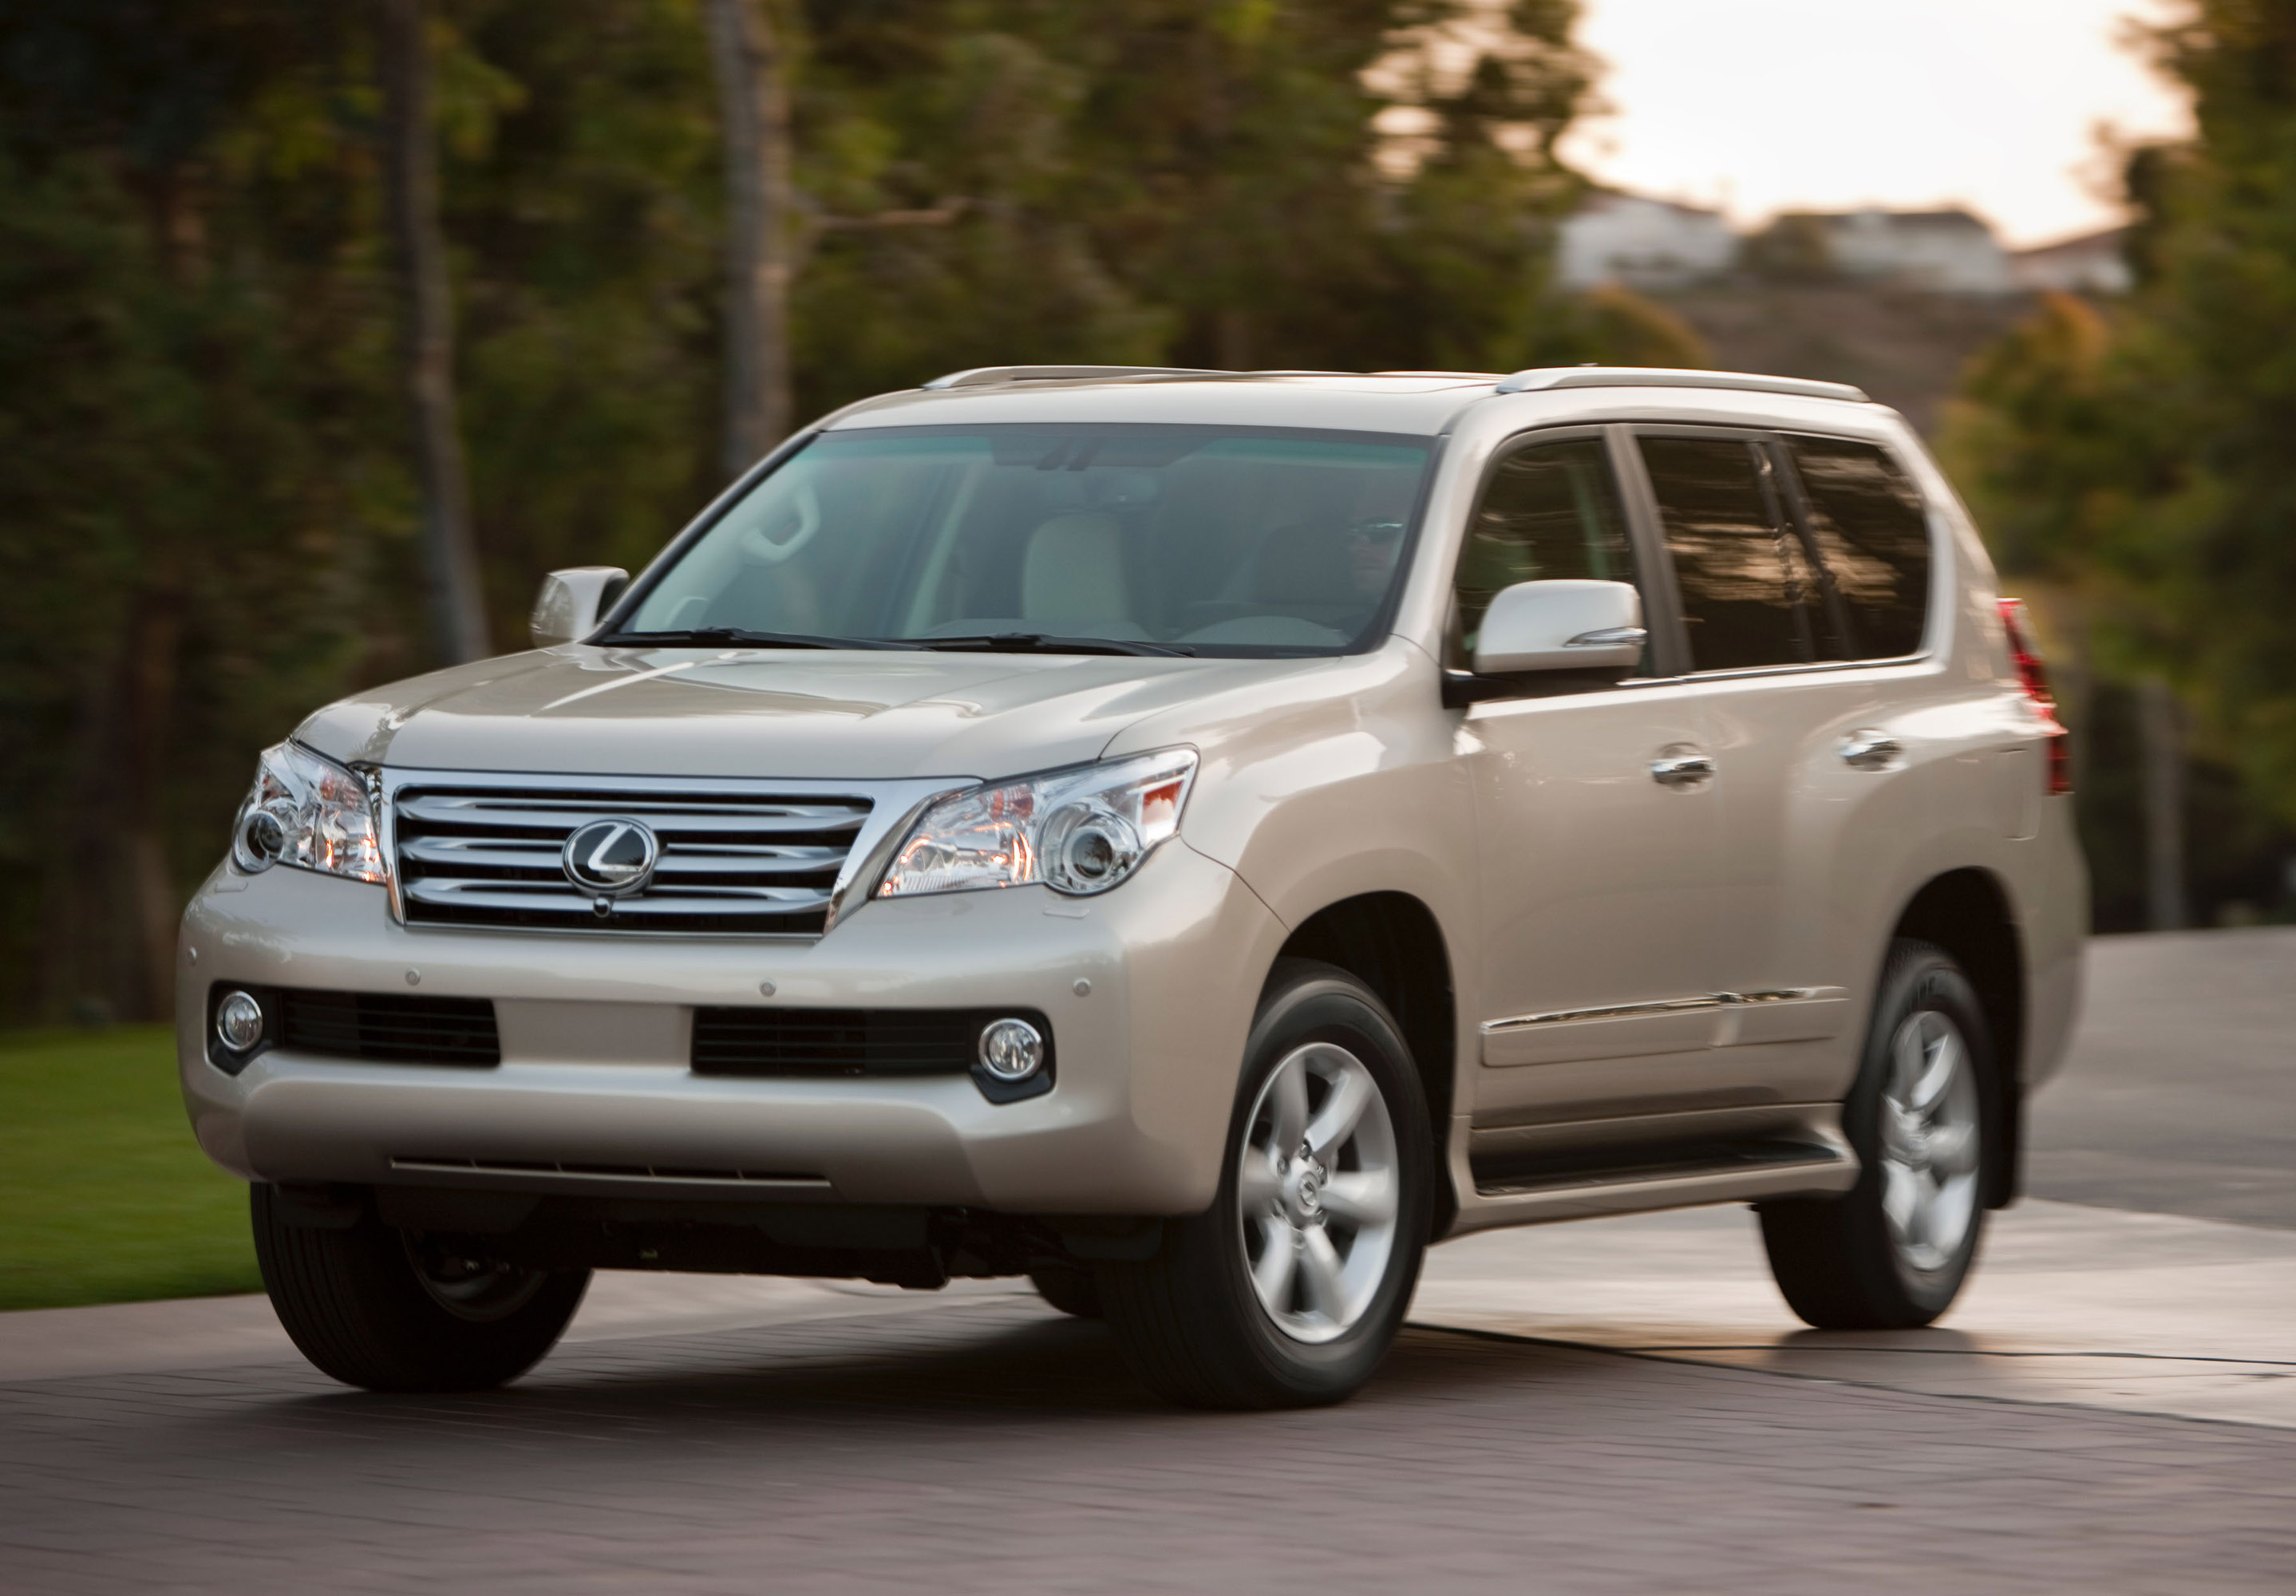 news suv even to is energy low time more switch on puts capable into sand gx full fayette lexus four in review reach drive beach finest and the wheel with